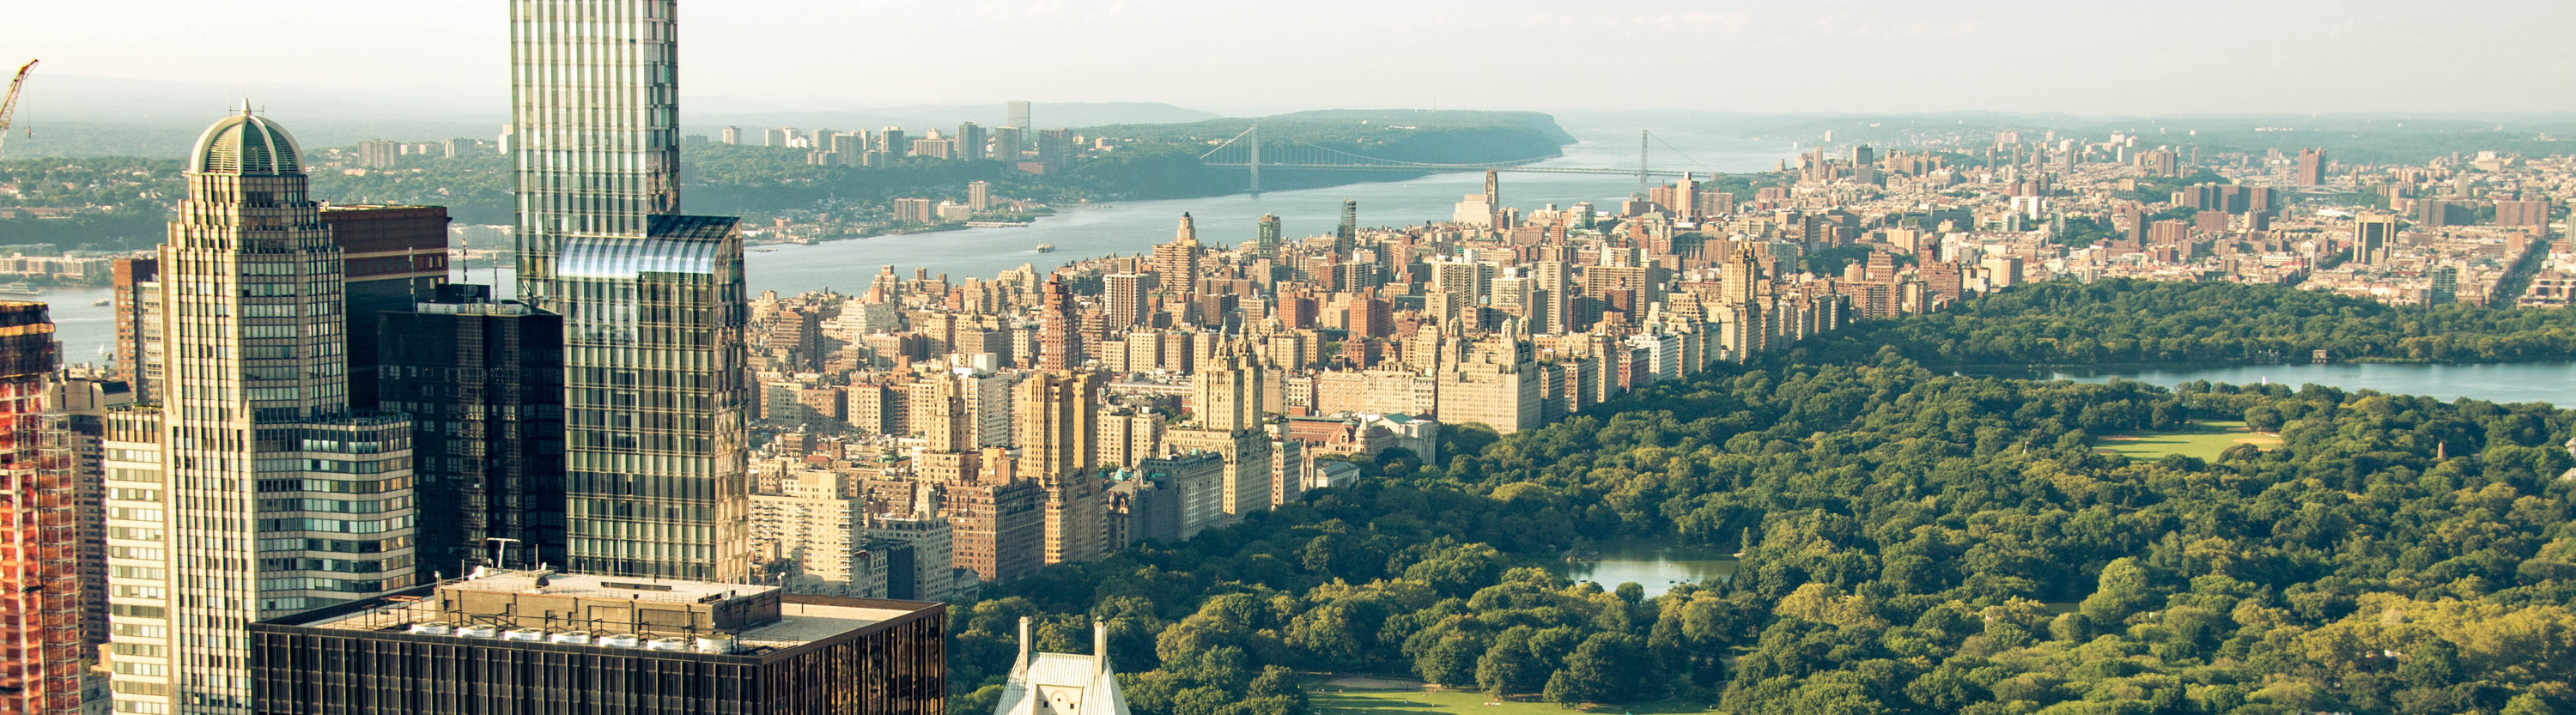 View of New York City buildings with Hudson River and Central Park